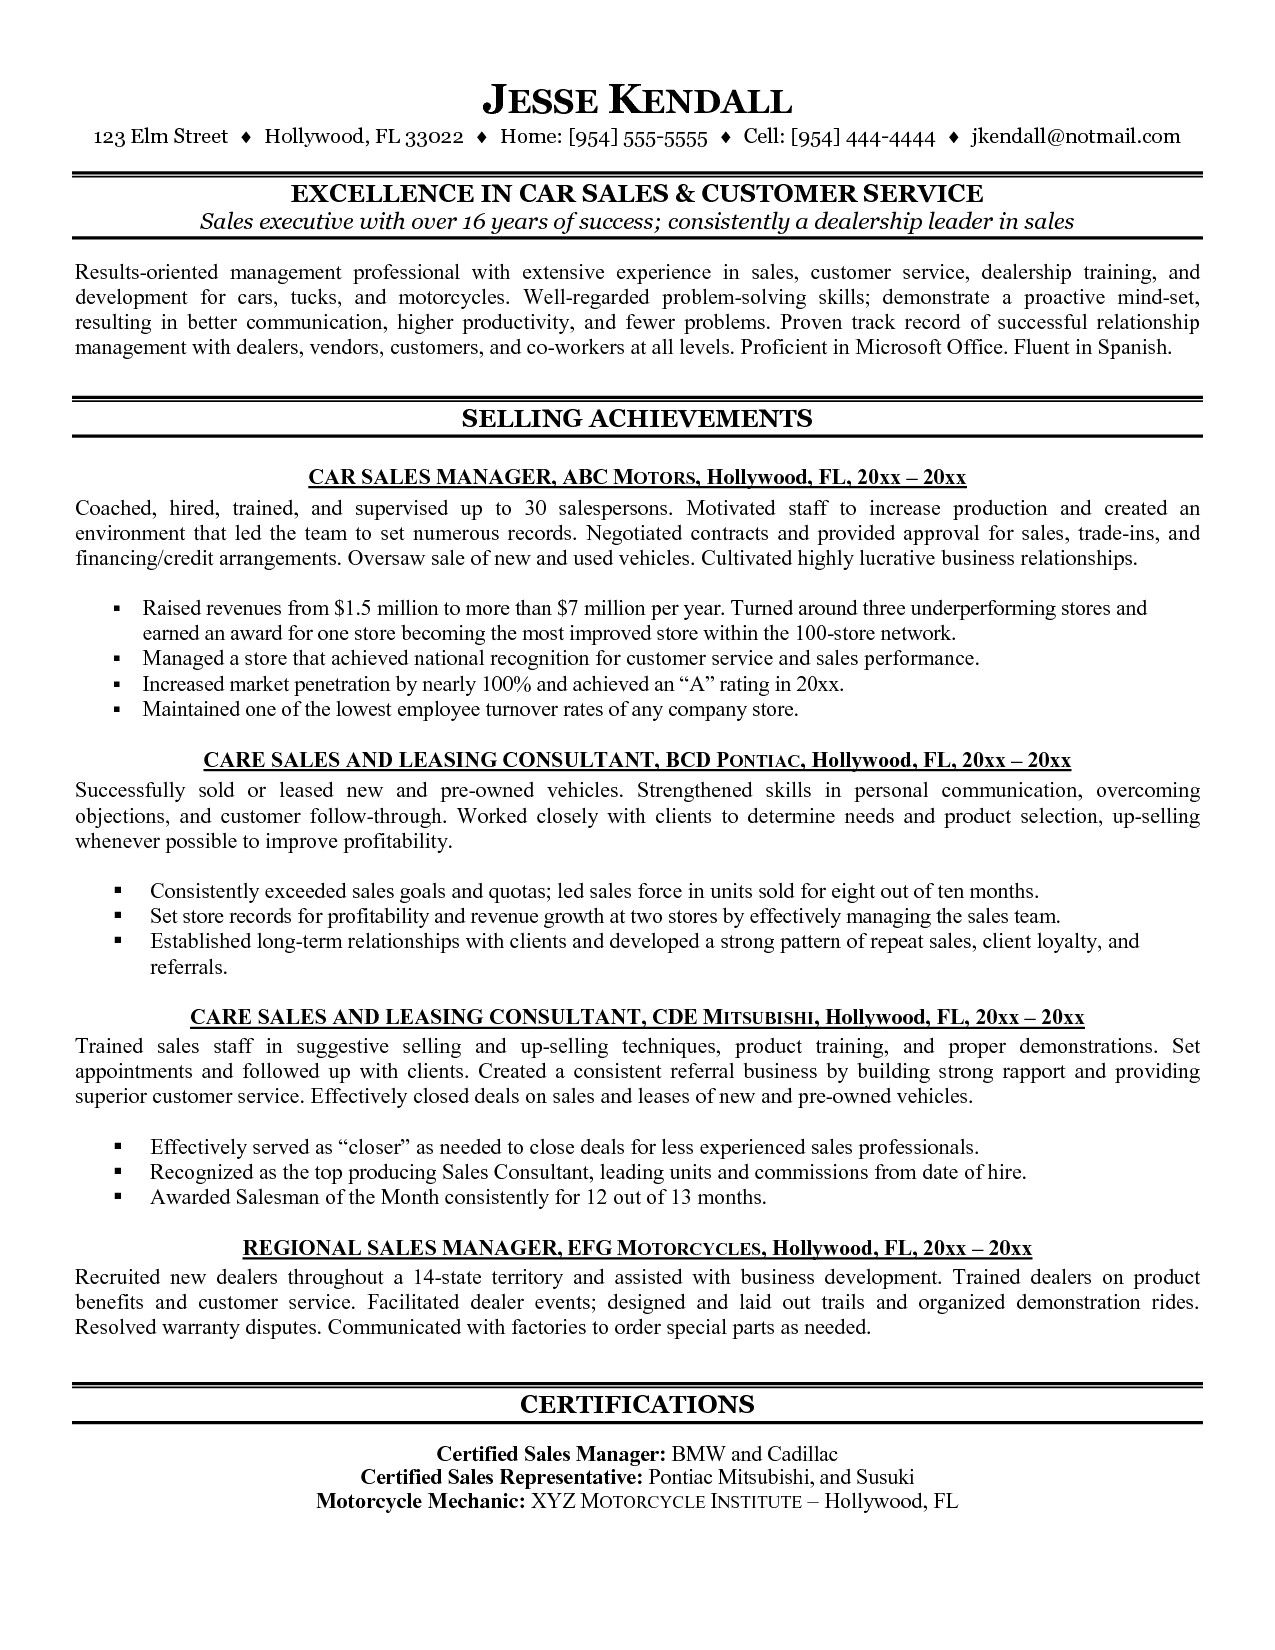 C.A.R Resume Examples | Resume Examples | Sales resume ...